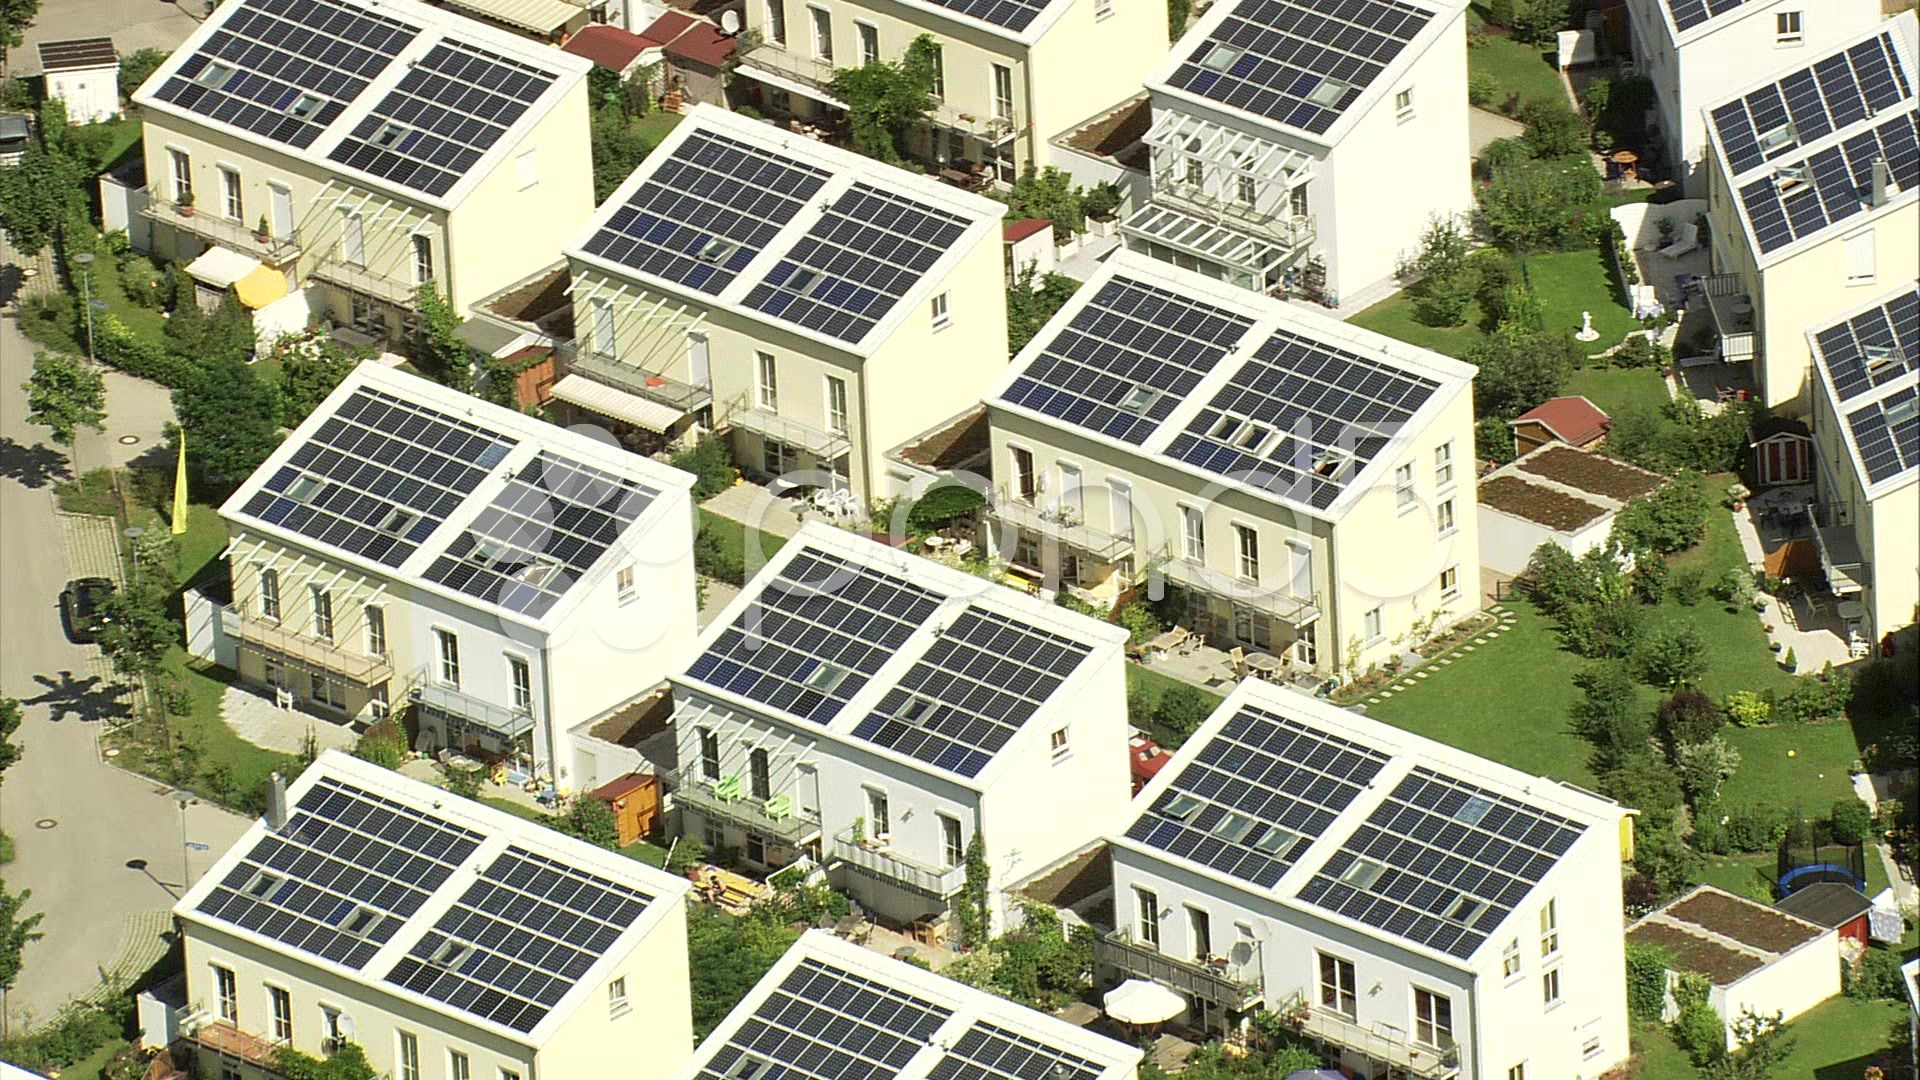 Houses With Solar Power Panels In Germany Stock Footage Power Solar Houses Panels Solar Power Panels Houses In Germany Solar House